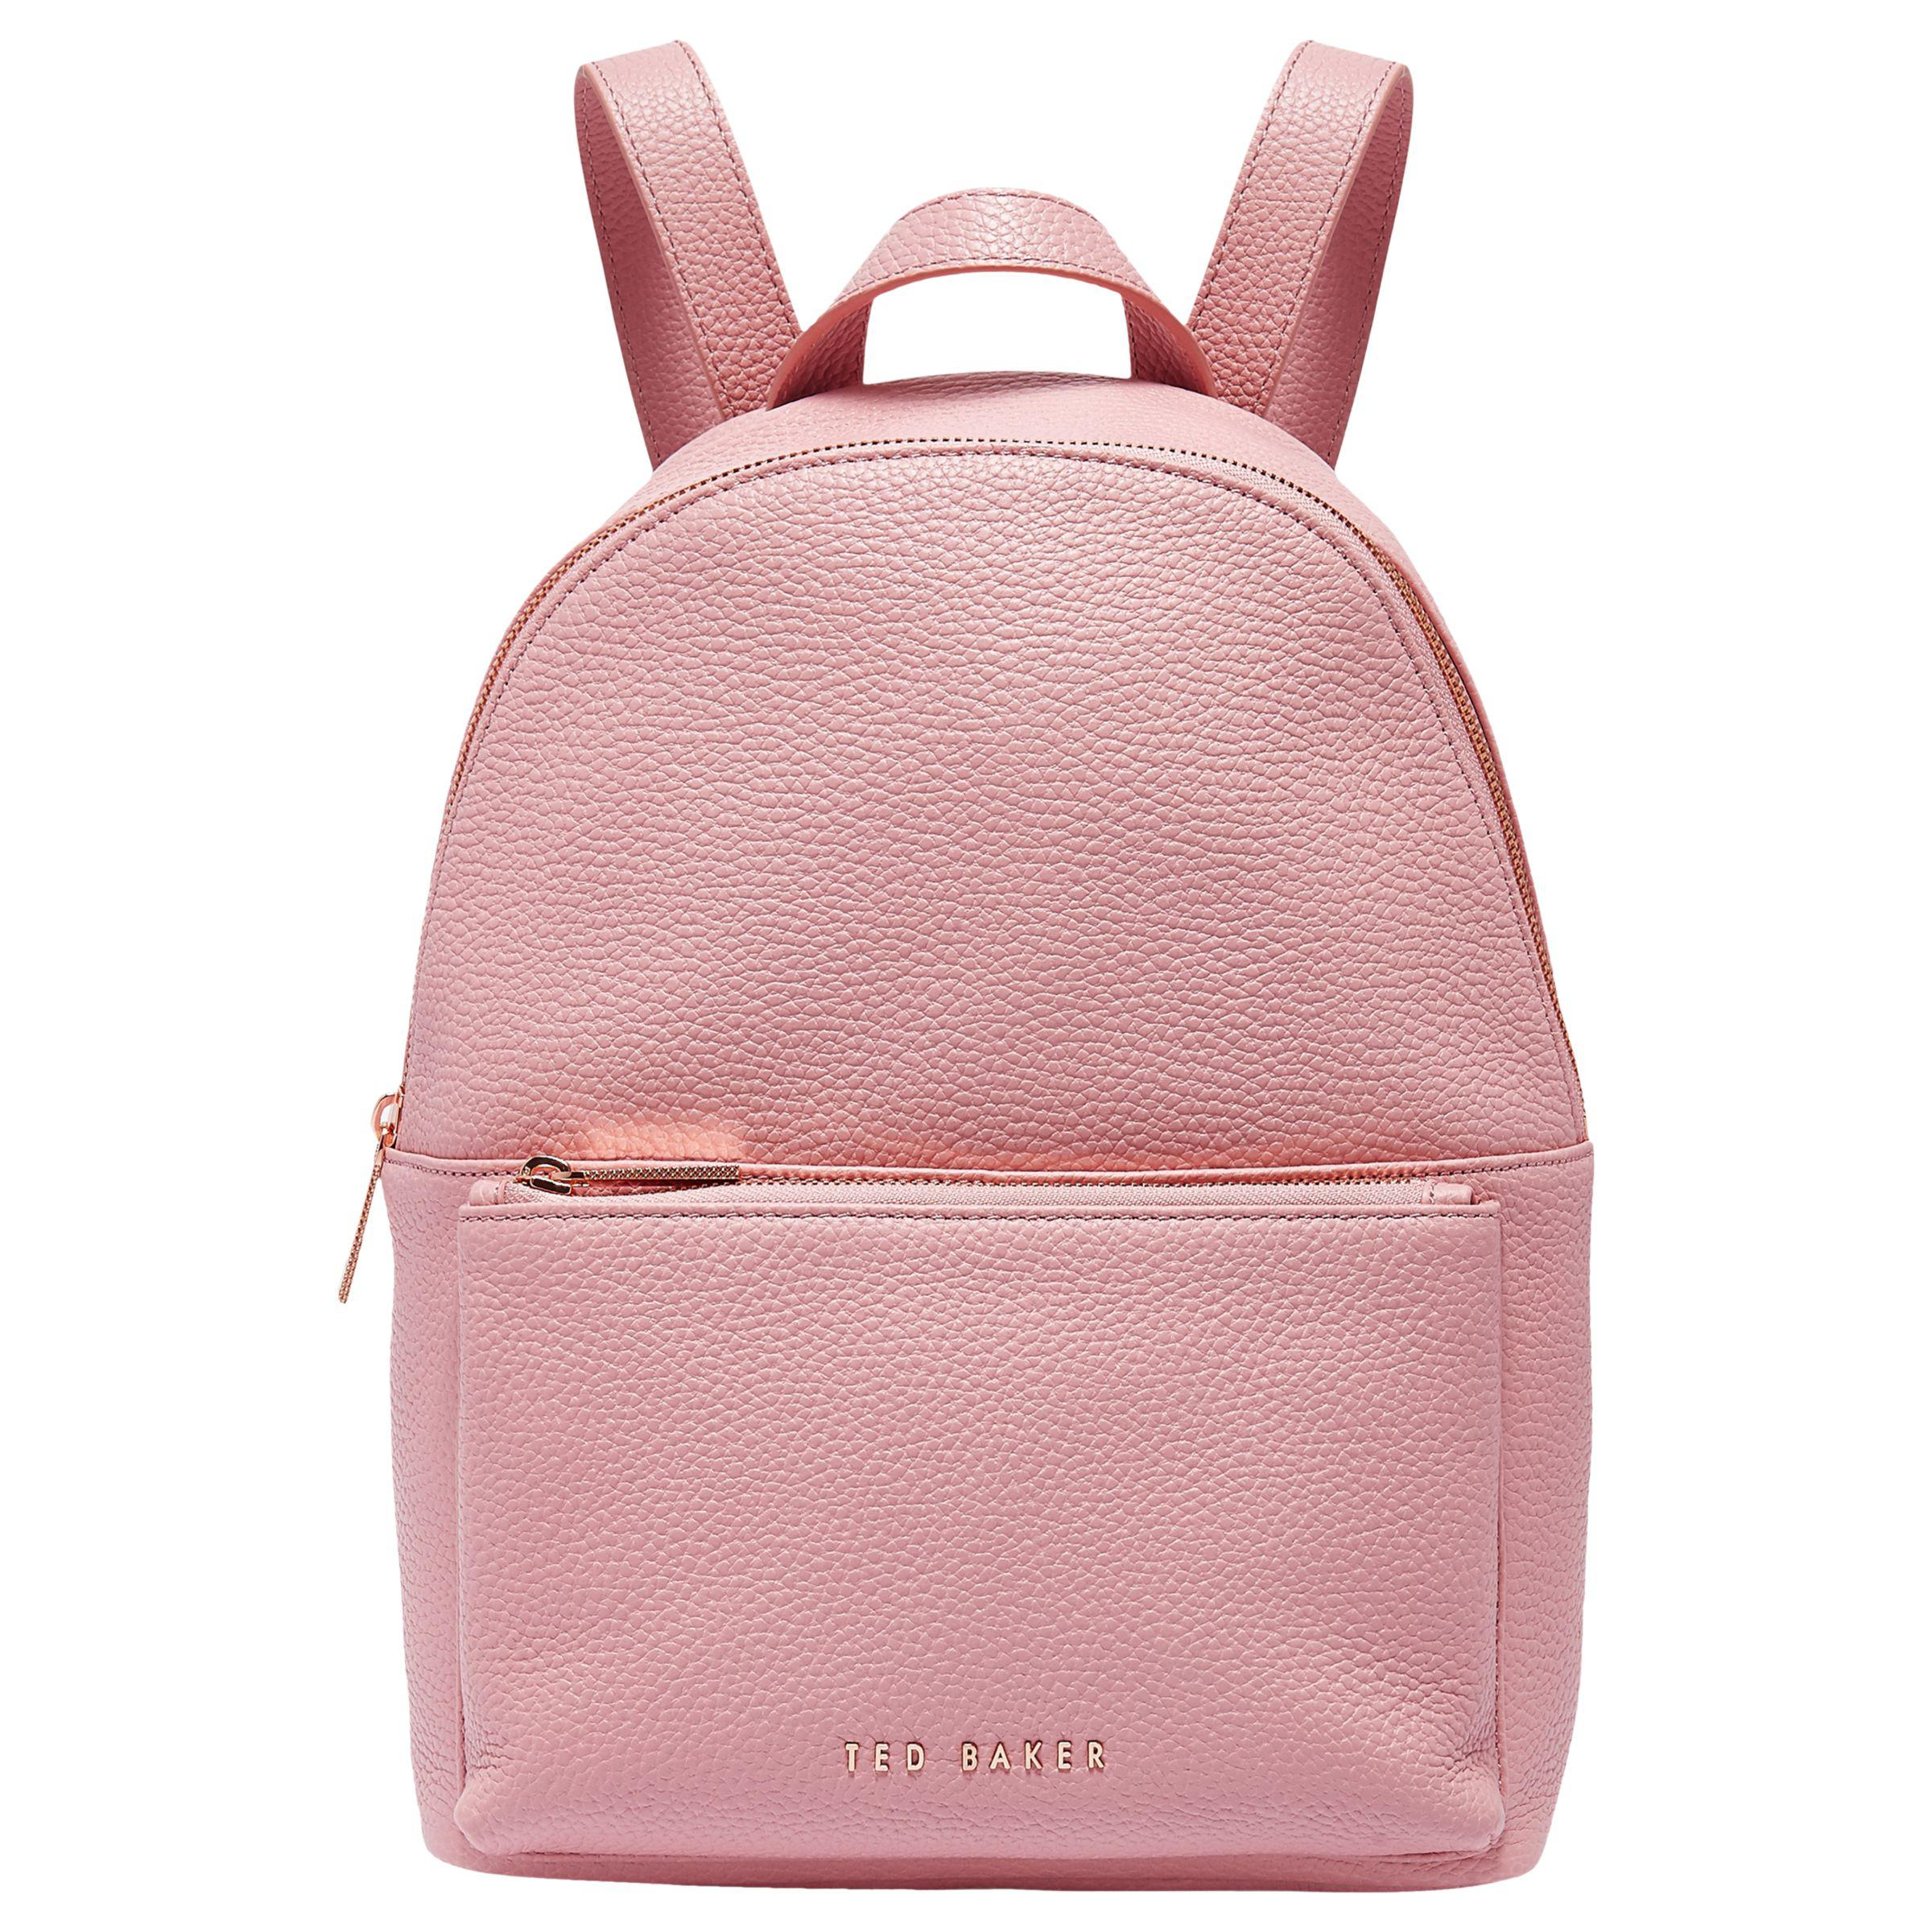 7c296d7527b0 Ted Baker Pearen Leather Backpack in Pink - Lyst